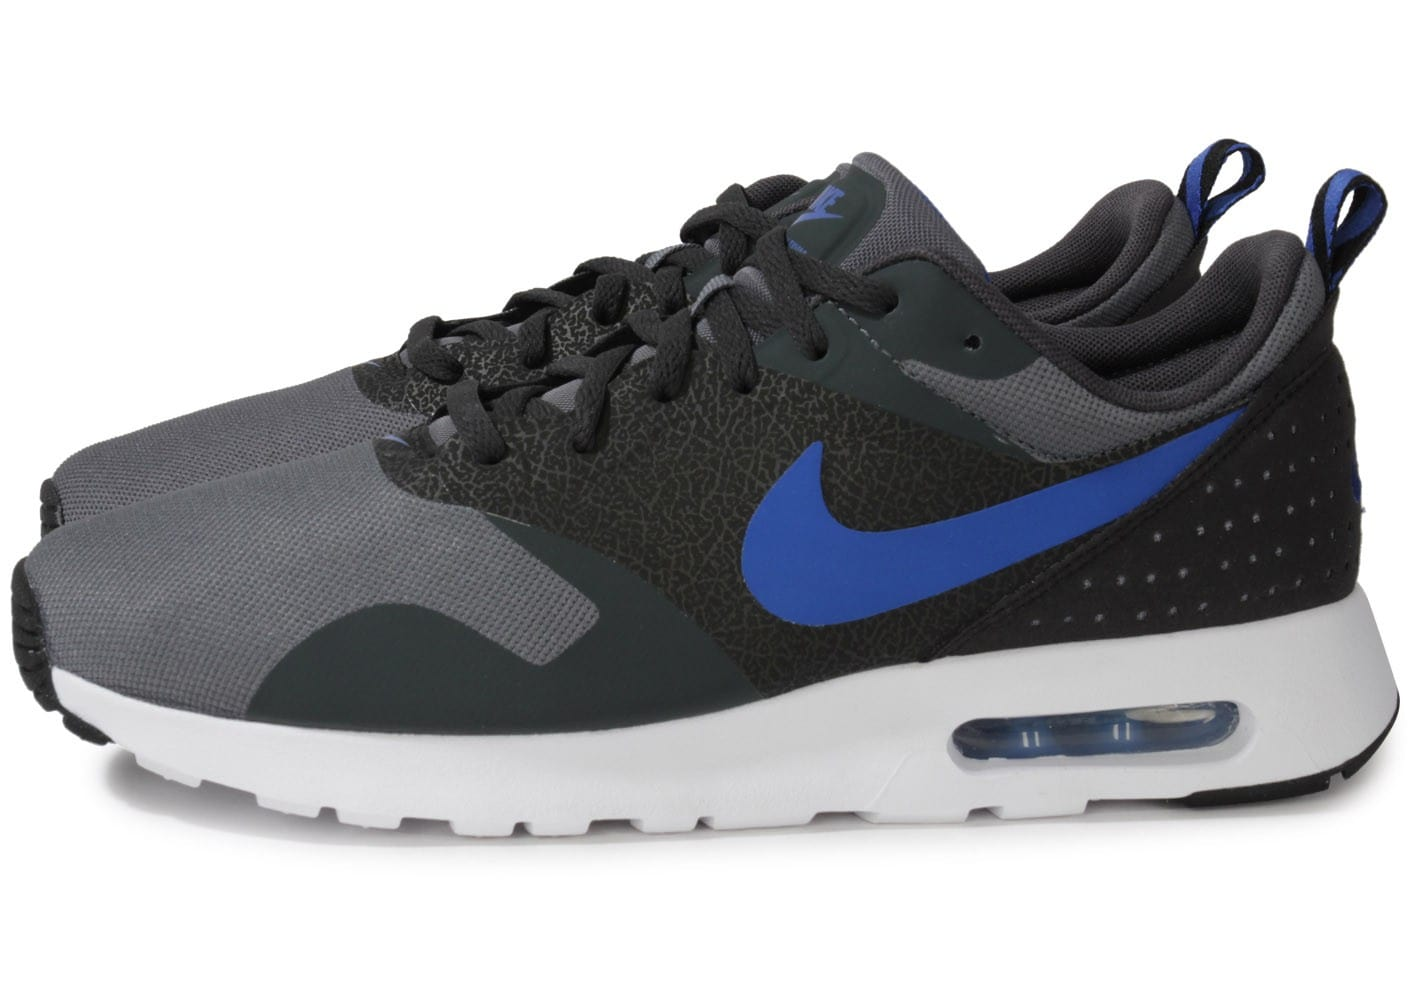 nike homme chausport